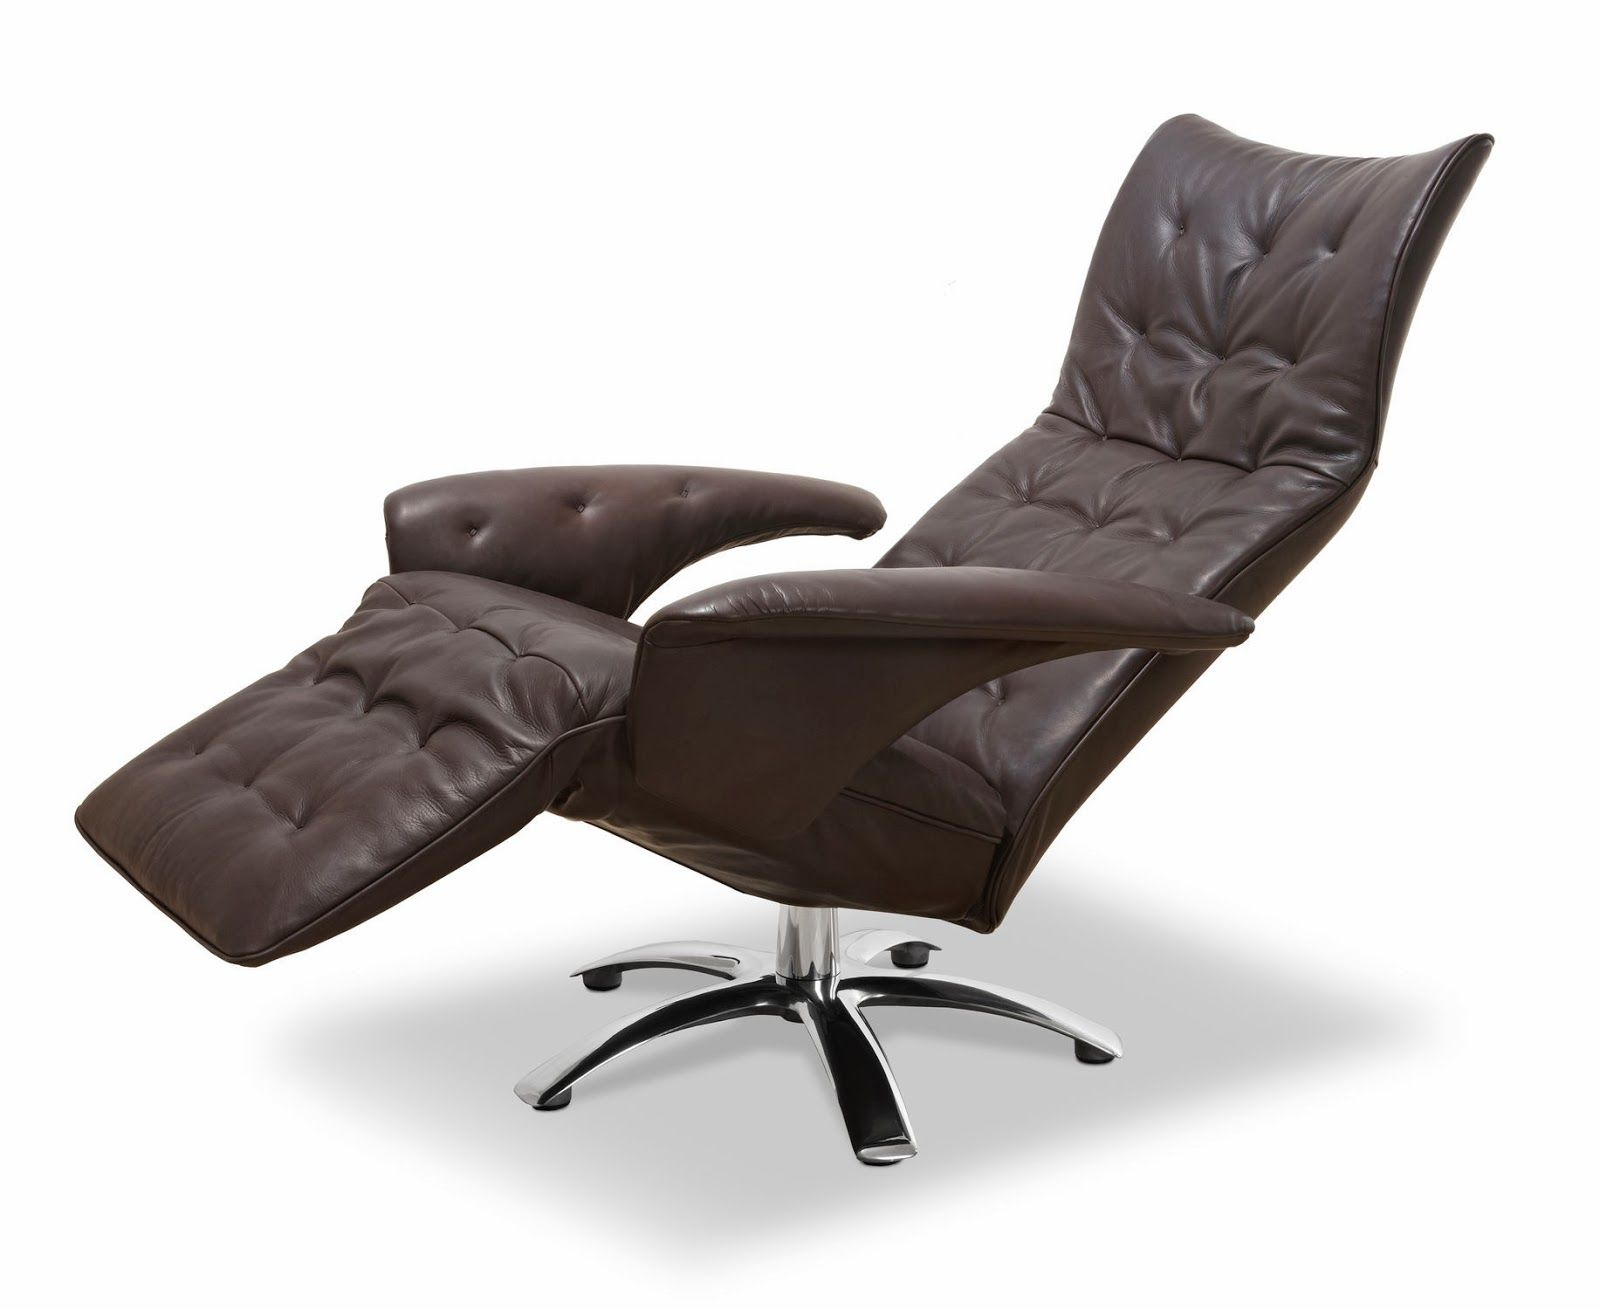 Furniture Modern Recliner Chair Design With Brown Leather